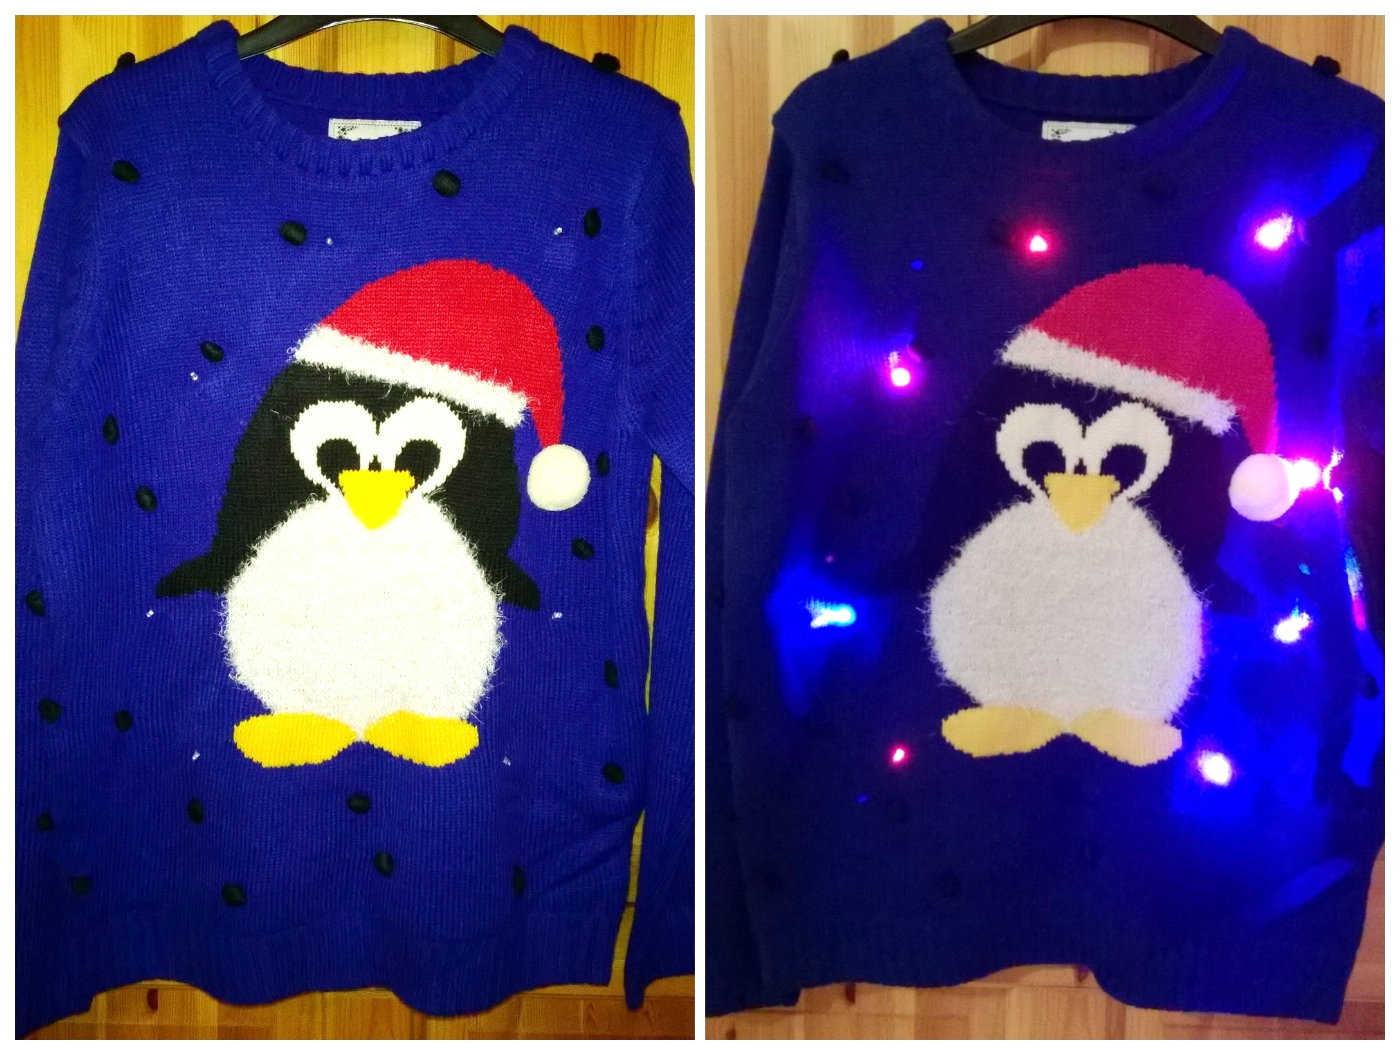 Christmas is fast approaching and already the streets are thronged with revellers. For the party season, Christmas jumpers are now a special tradition in Ireland.